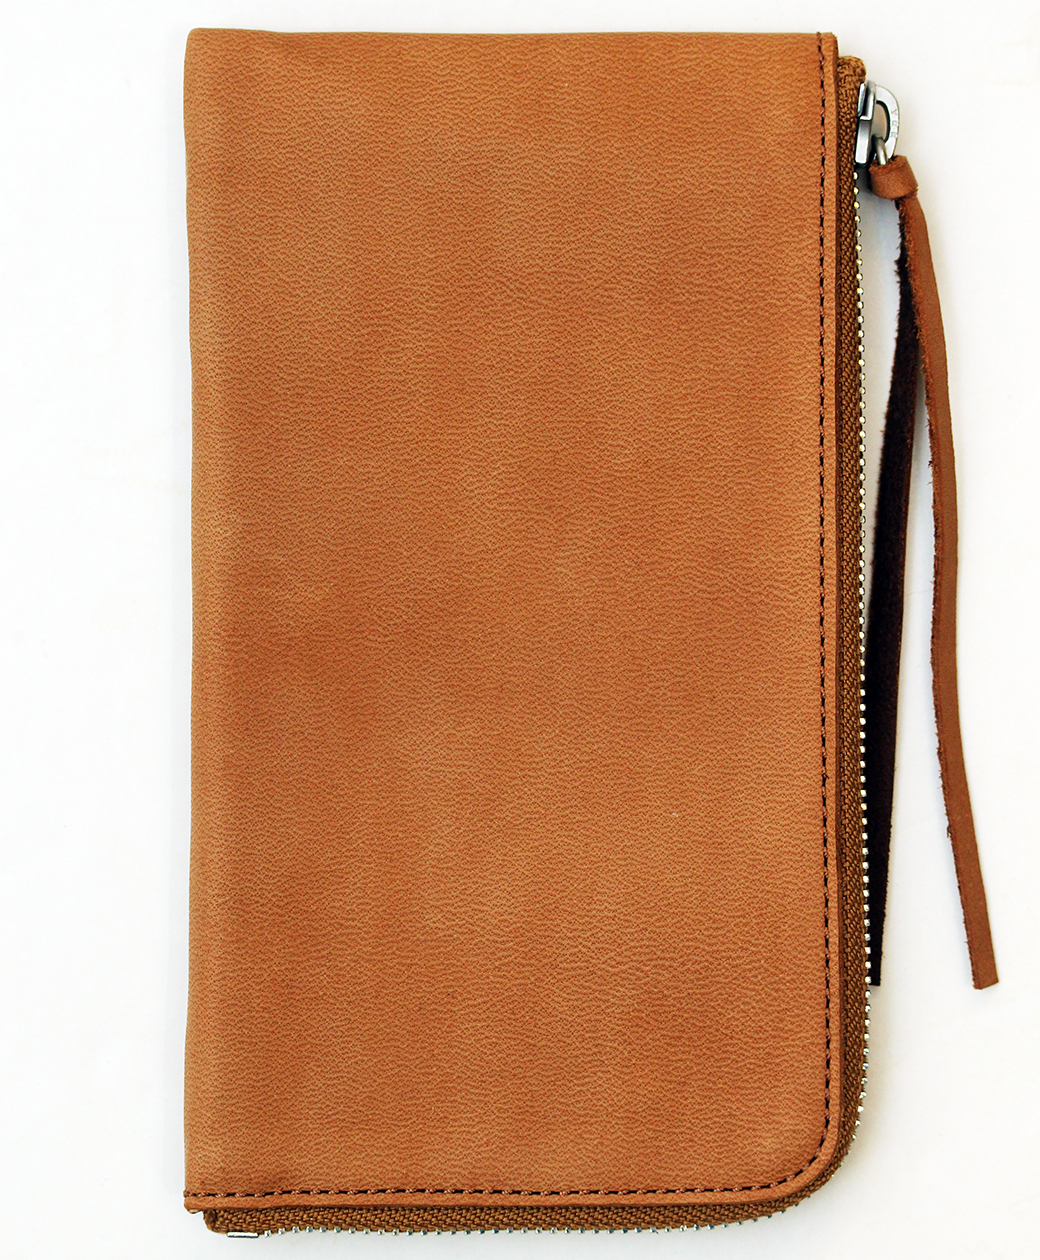 hobo HORSE LEATHER LONG ZIP WALLET(BROWN)